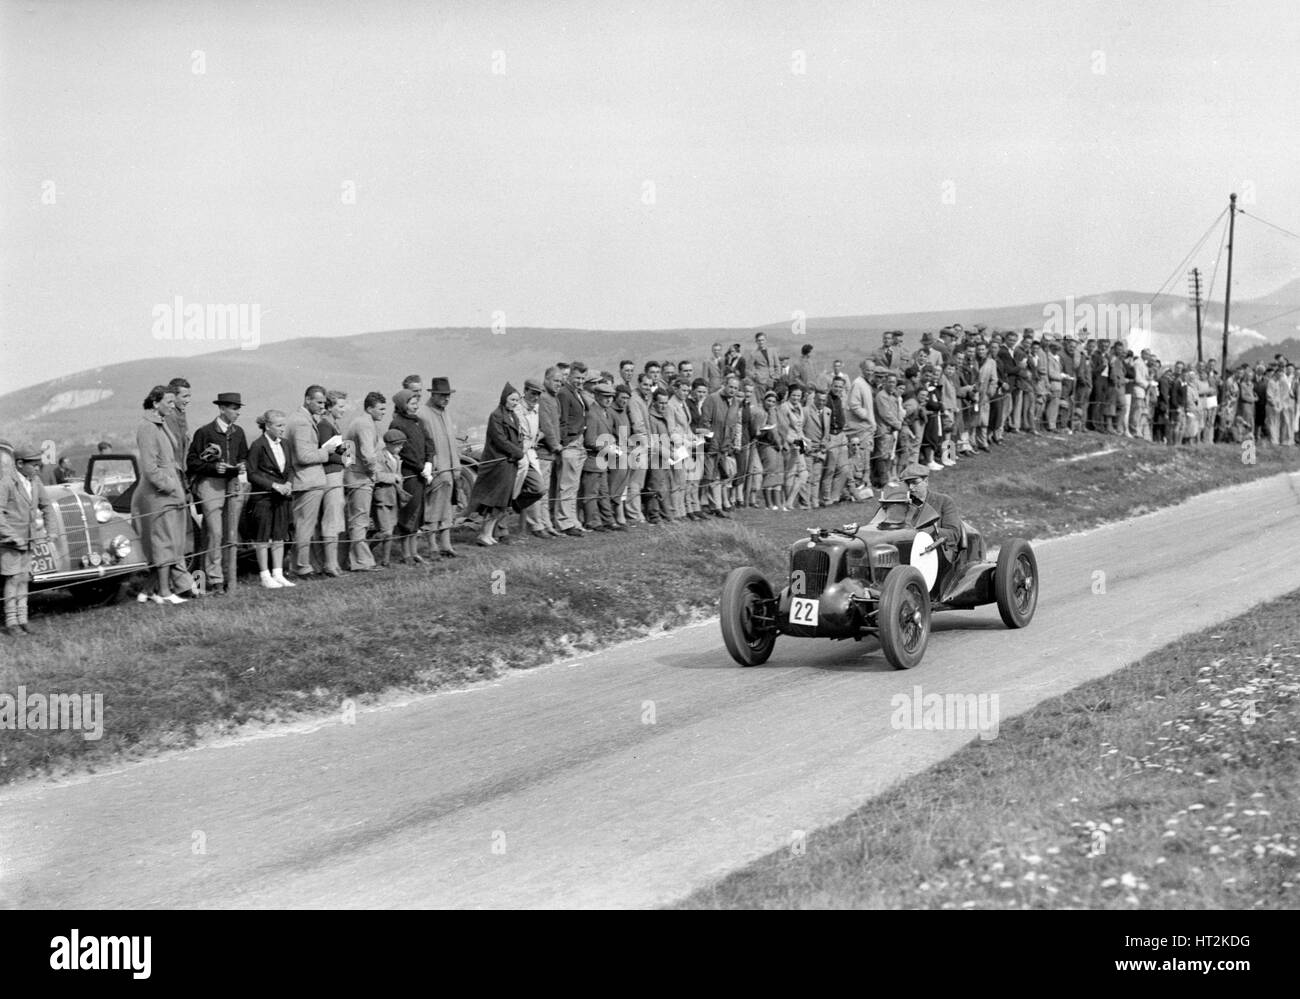 MG R type of Sir Clive Edwards competing at the Lewes Speed Trials, Sussex, 1938. Artist: Bill Brunell. - Stock Image